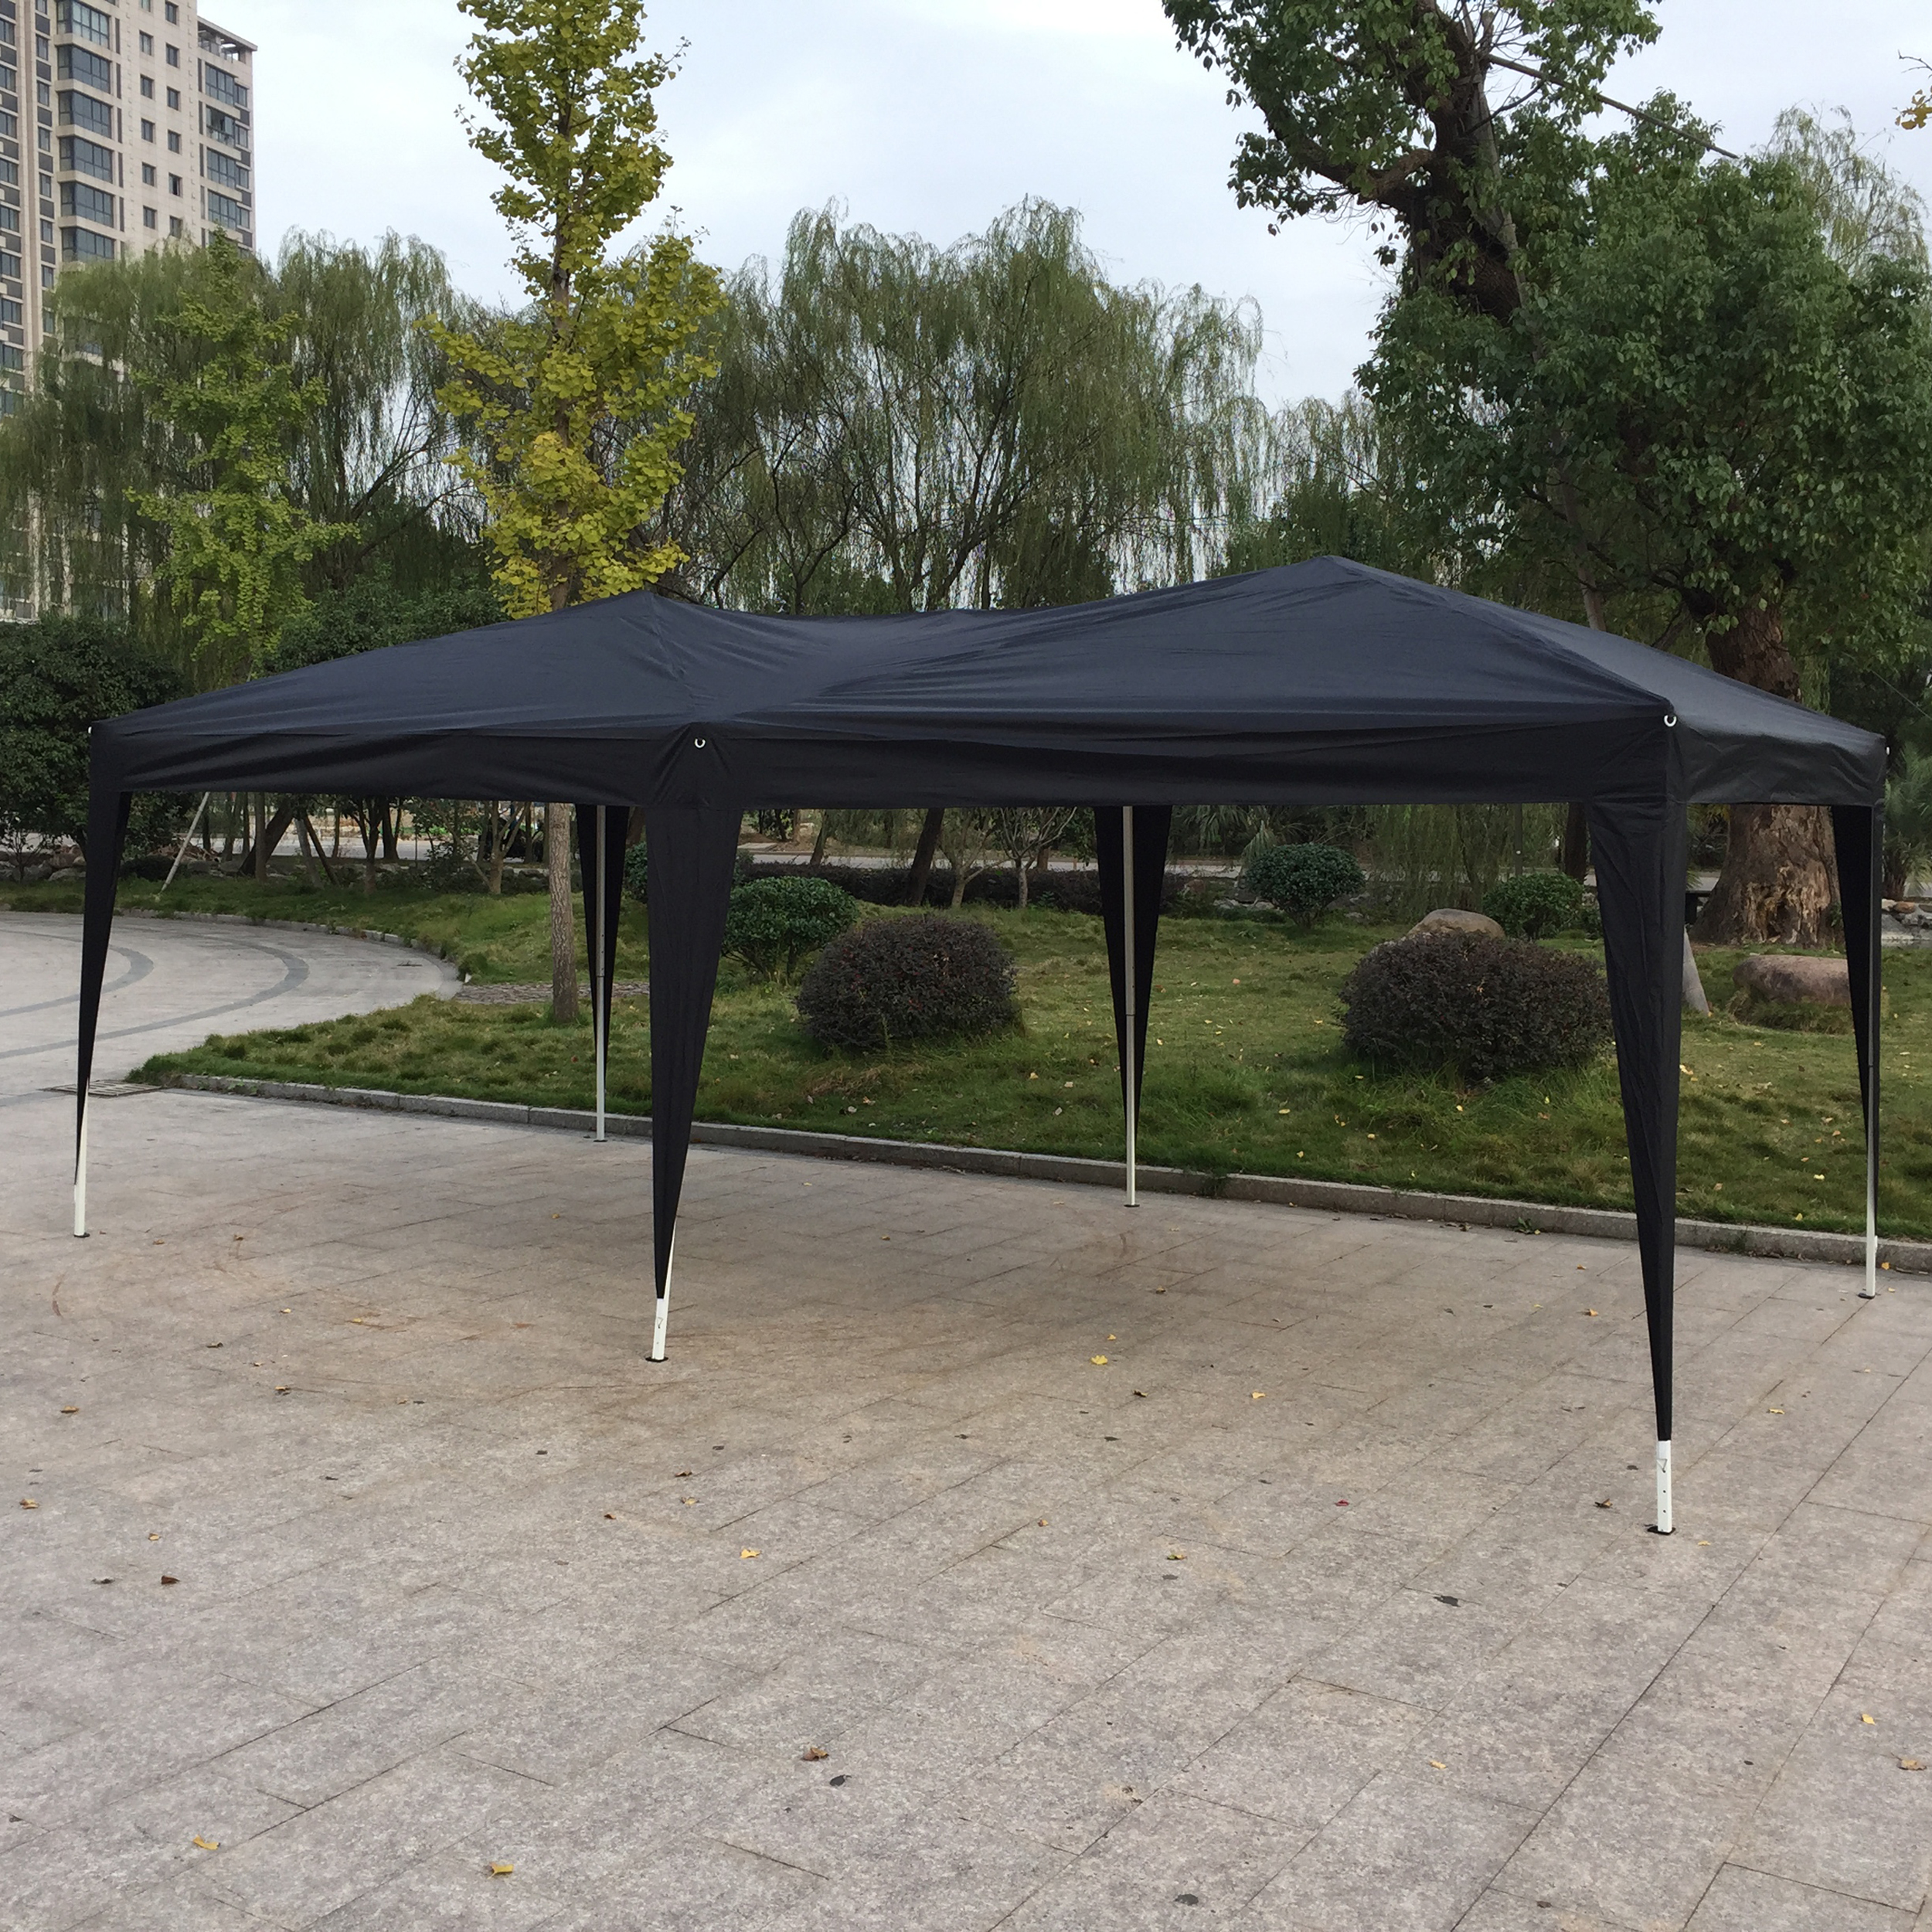 10u0027x 20u0027 EZ Pop UP Wedding Party Tent Gazebo Canopy 6 Sidewalls w/Carry Bag & 10u0027x 20u0027 EZ Pop UP Wedding Party Tent Gazebo Canopy 6 Sidewalls w ...